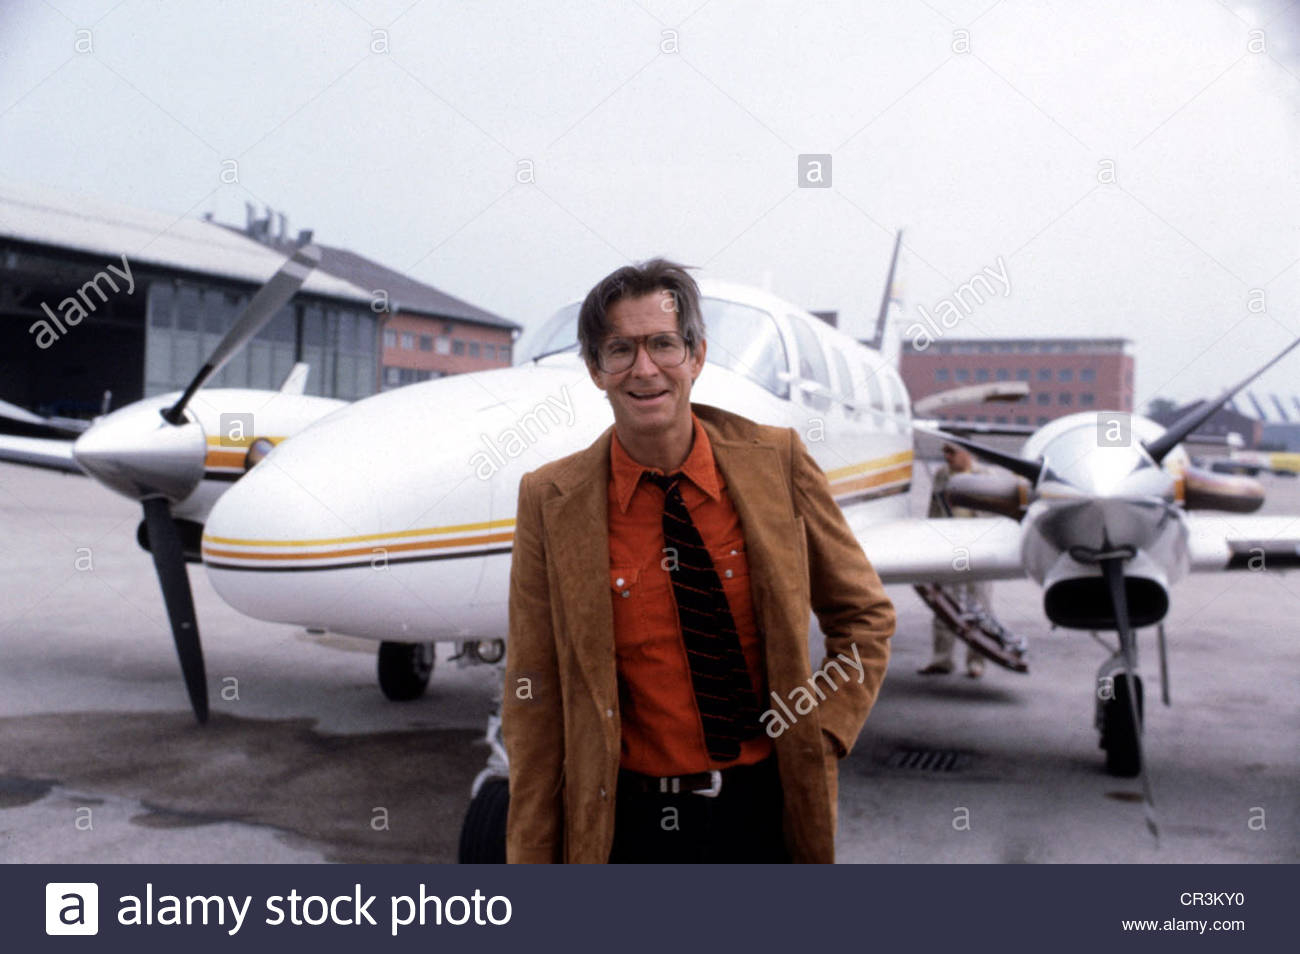 Perkins, Anthony, 4.4.1932 - 13.9.1992, US actor, half length, arrival at an airport, 1980s, glasses, plane, sneakers, - Stock Image